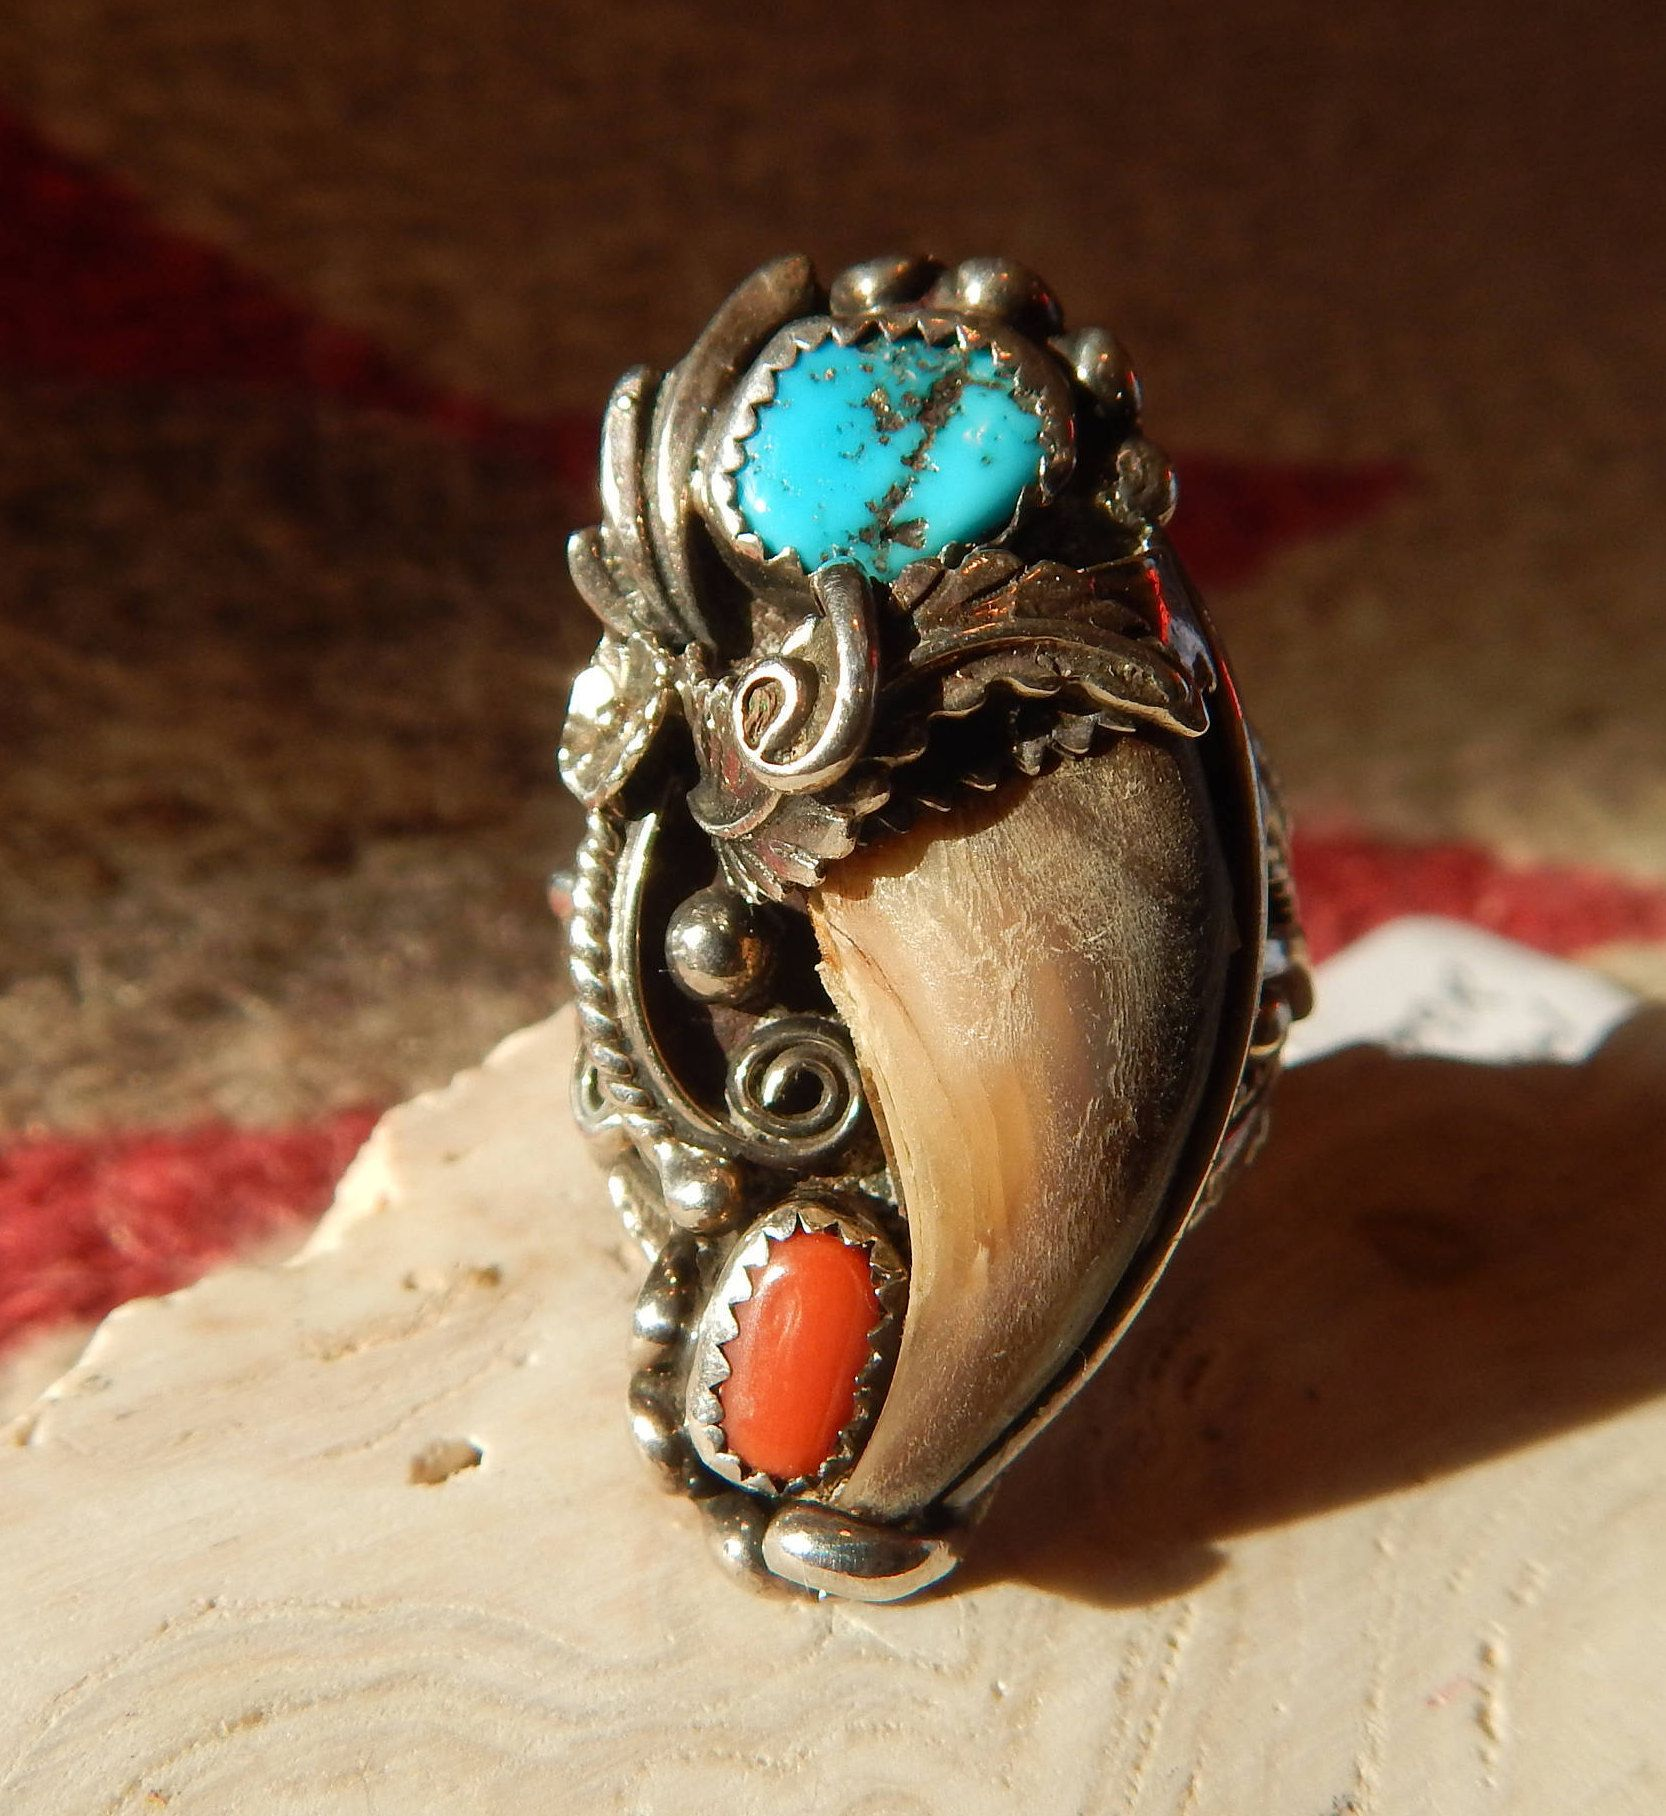 size 12 ring turquoise faux claw southwestern jewelry Texas mens